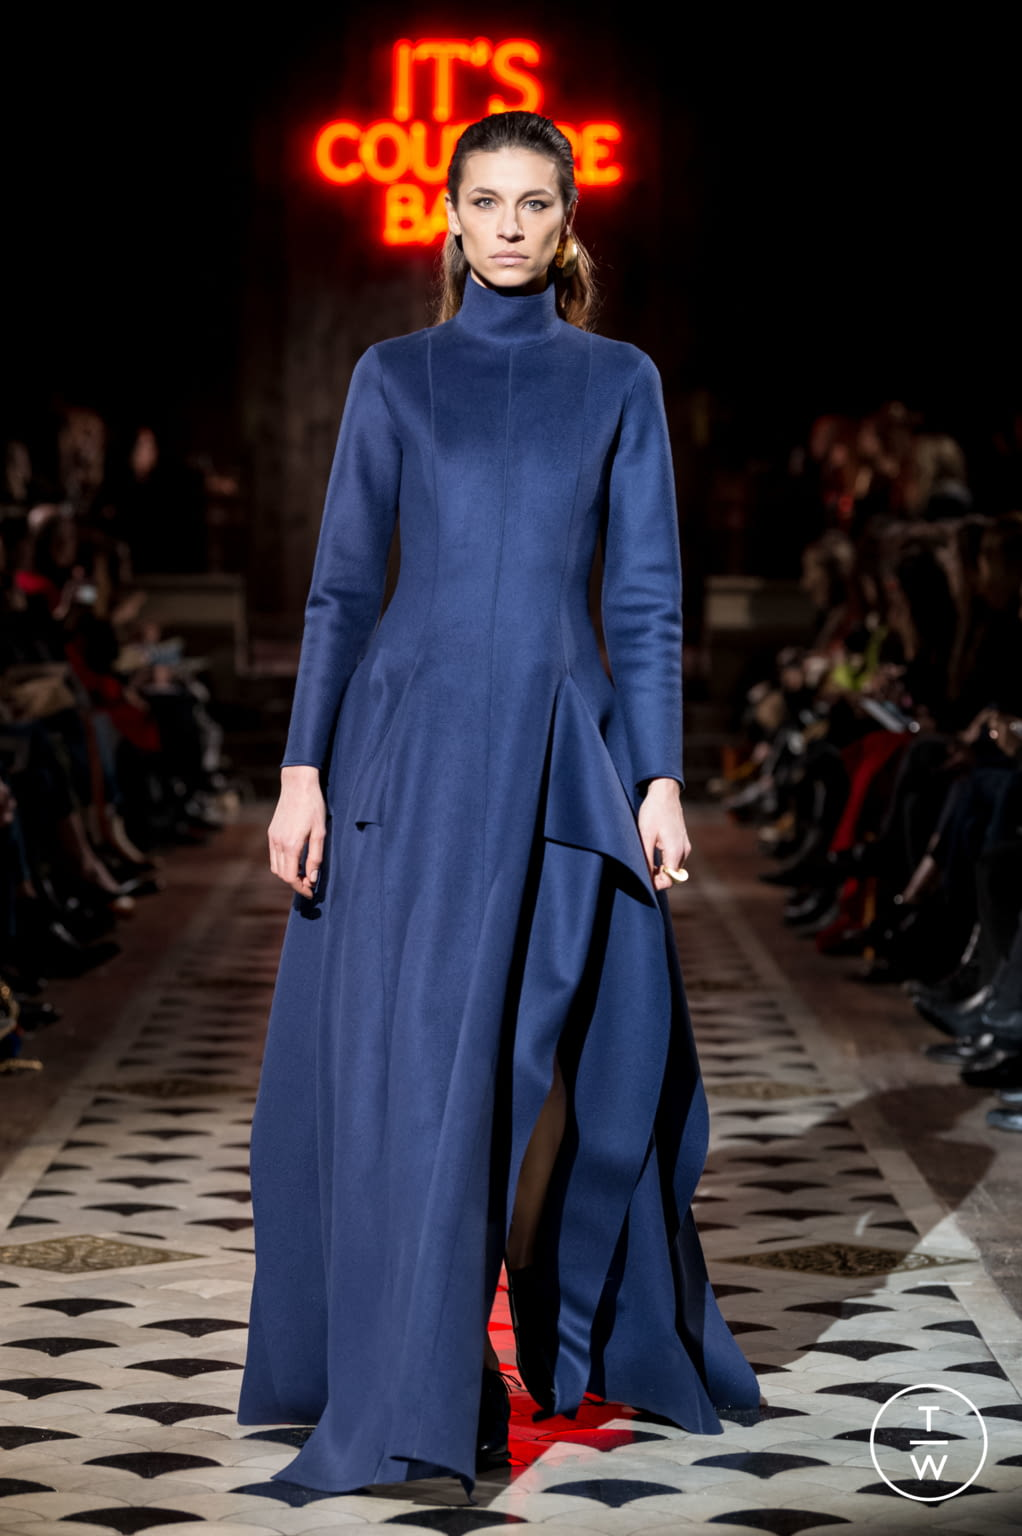 Fashion Week Paris Spring/Summer 2018 look 38 de la collection Maison Rabih Kayrouz couture